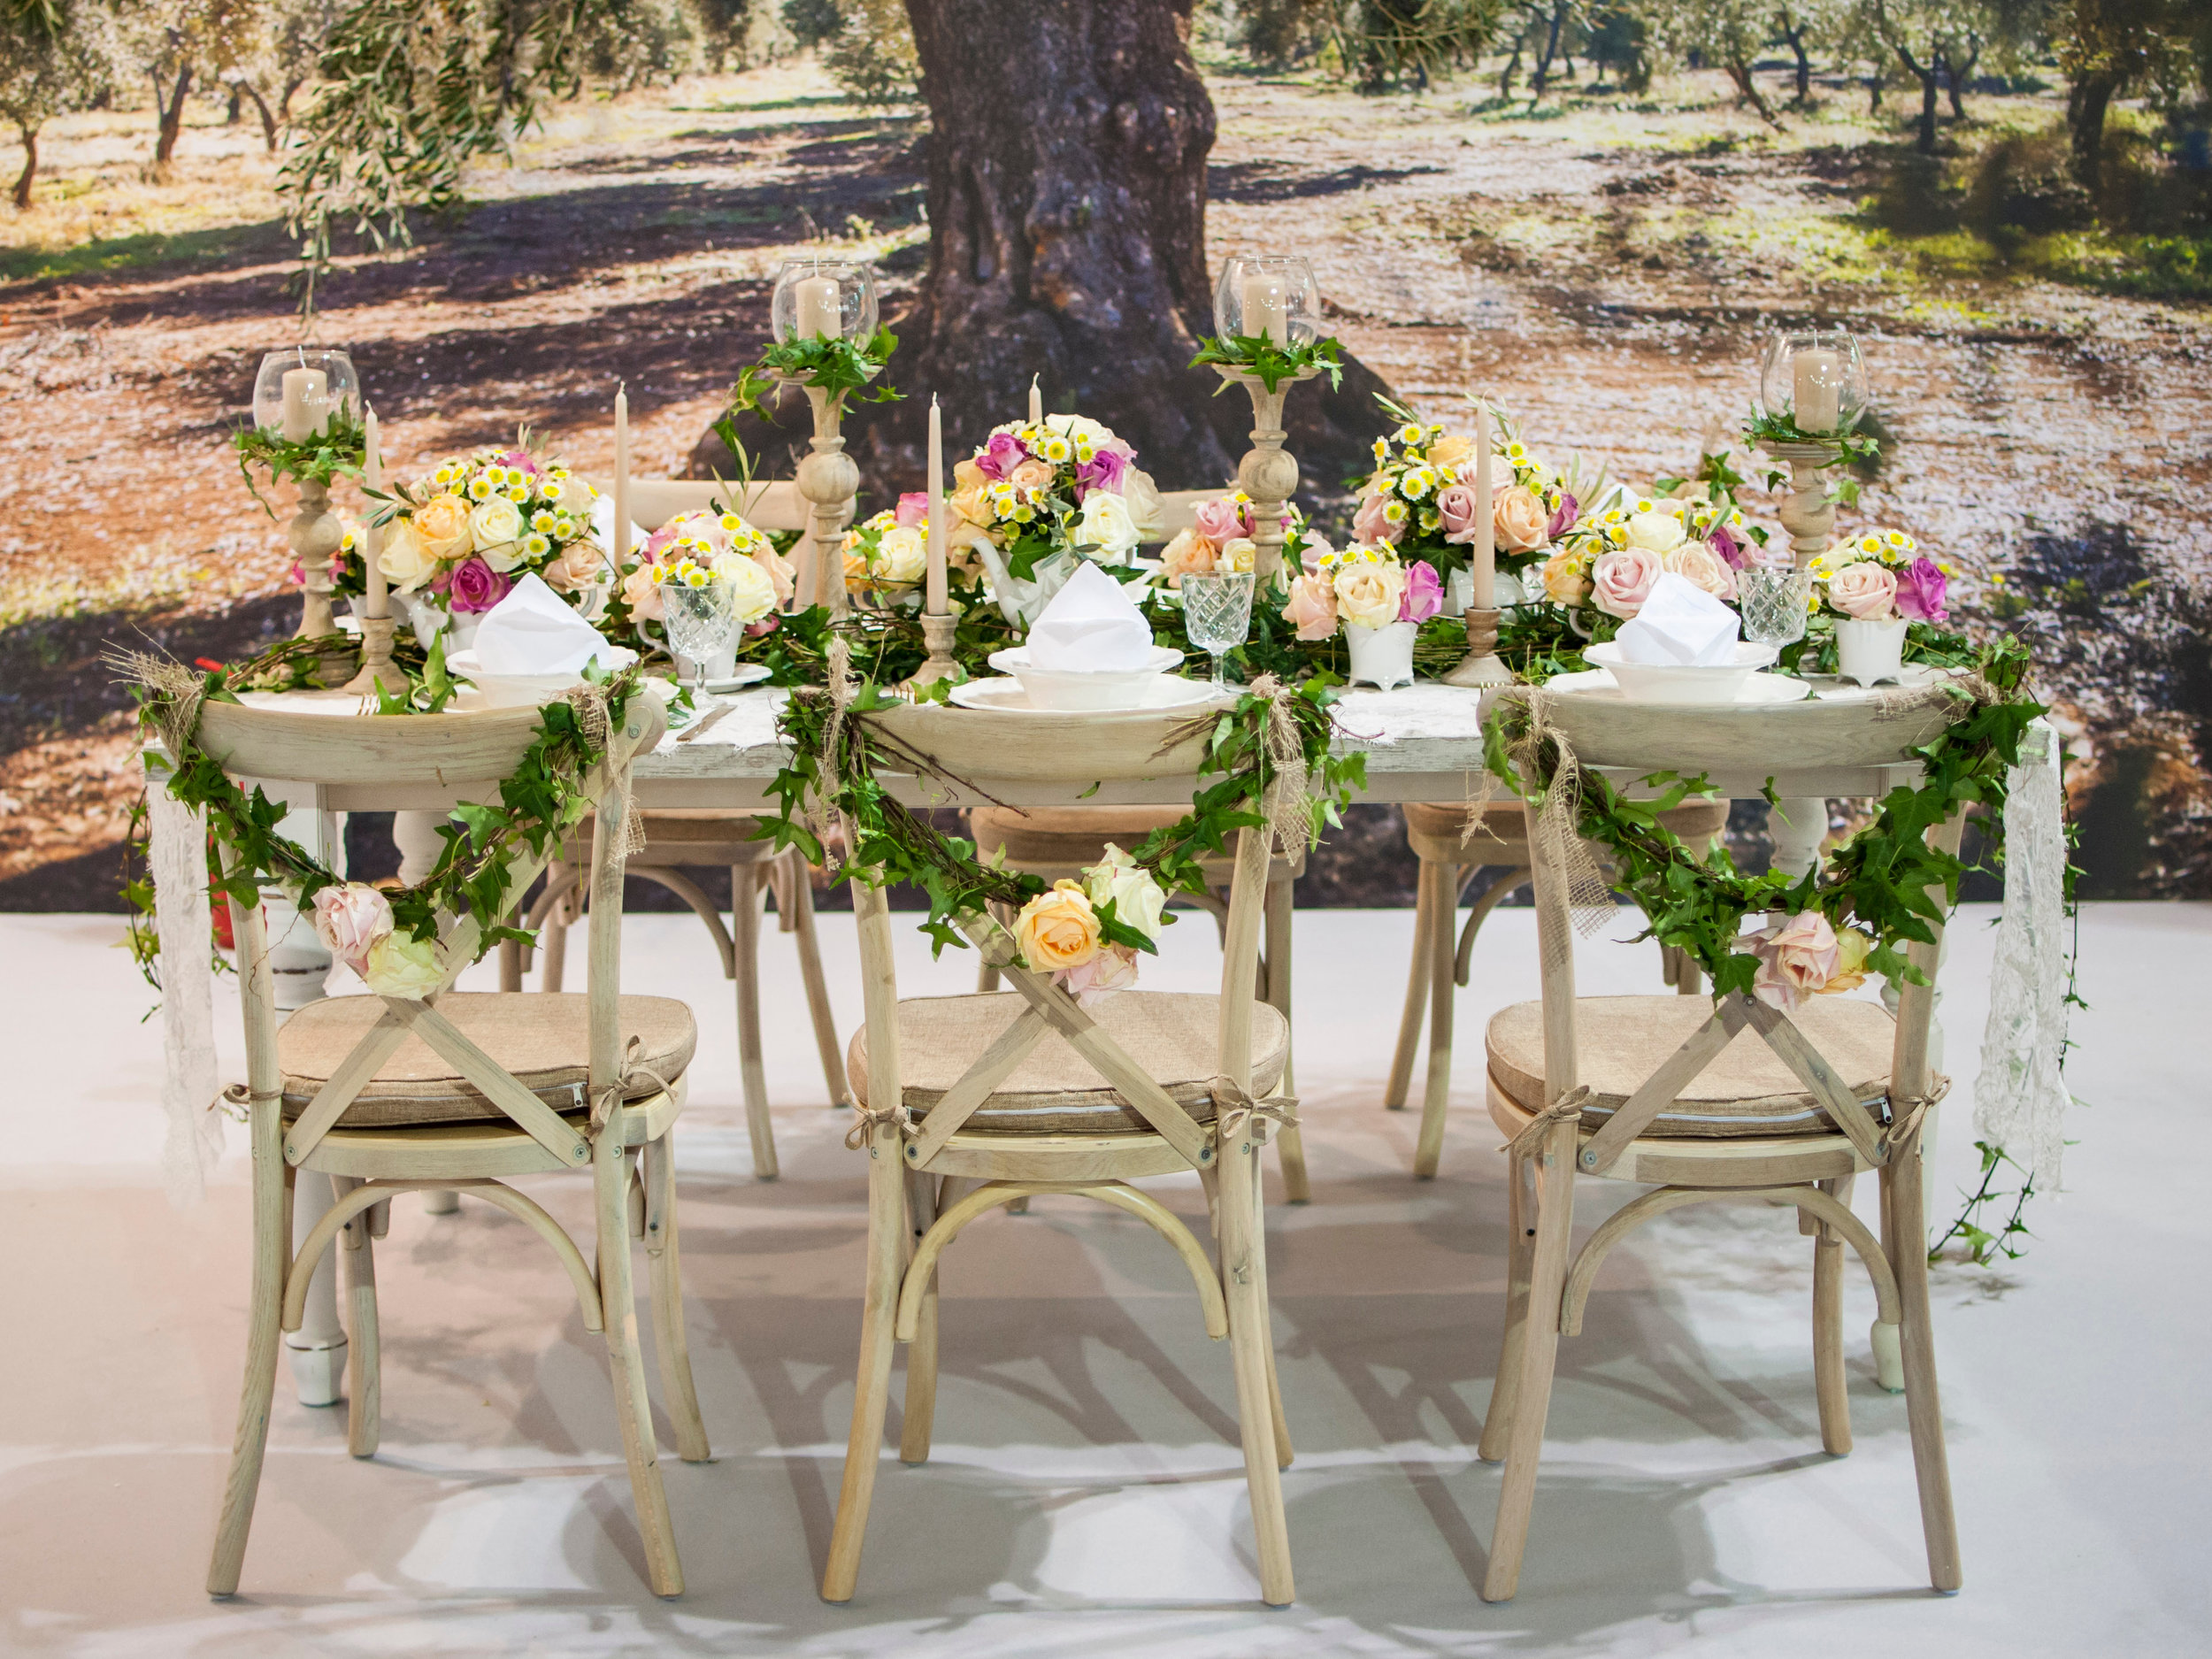 Flint hill - fresh flower centerpiece.jpg